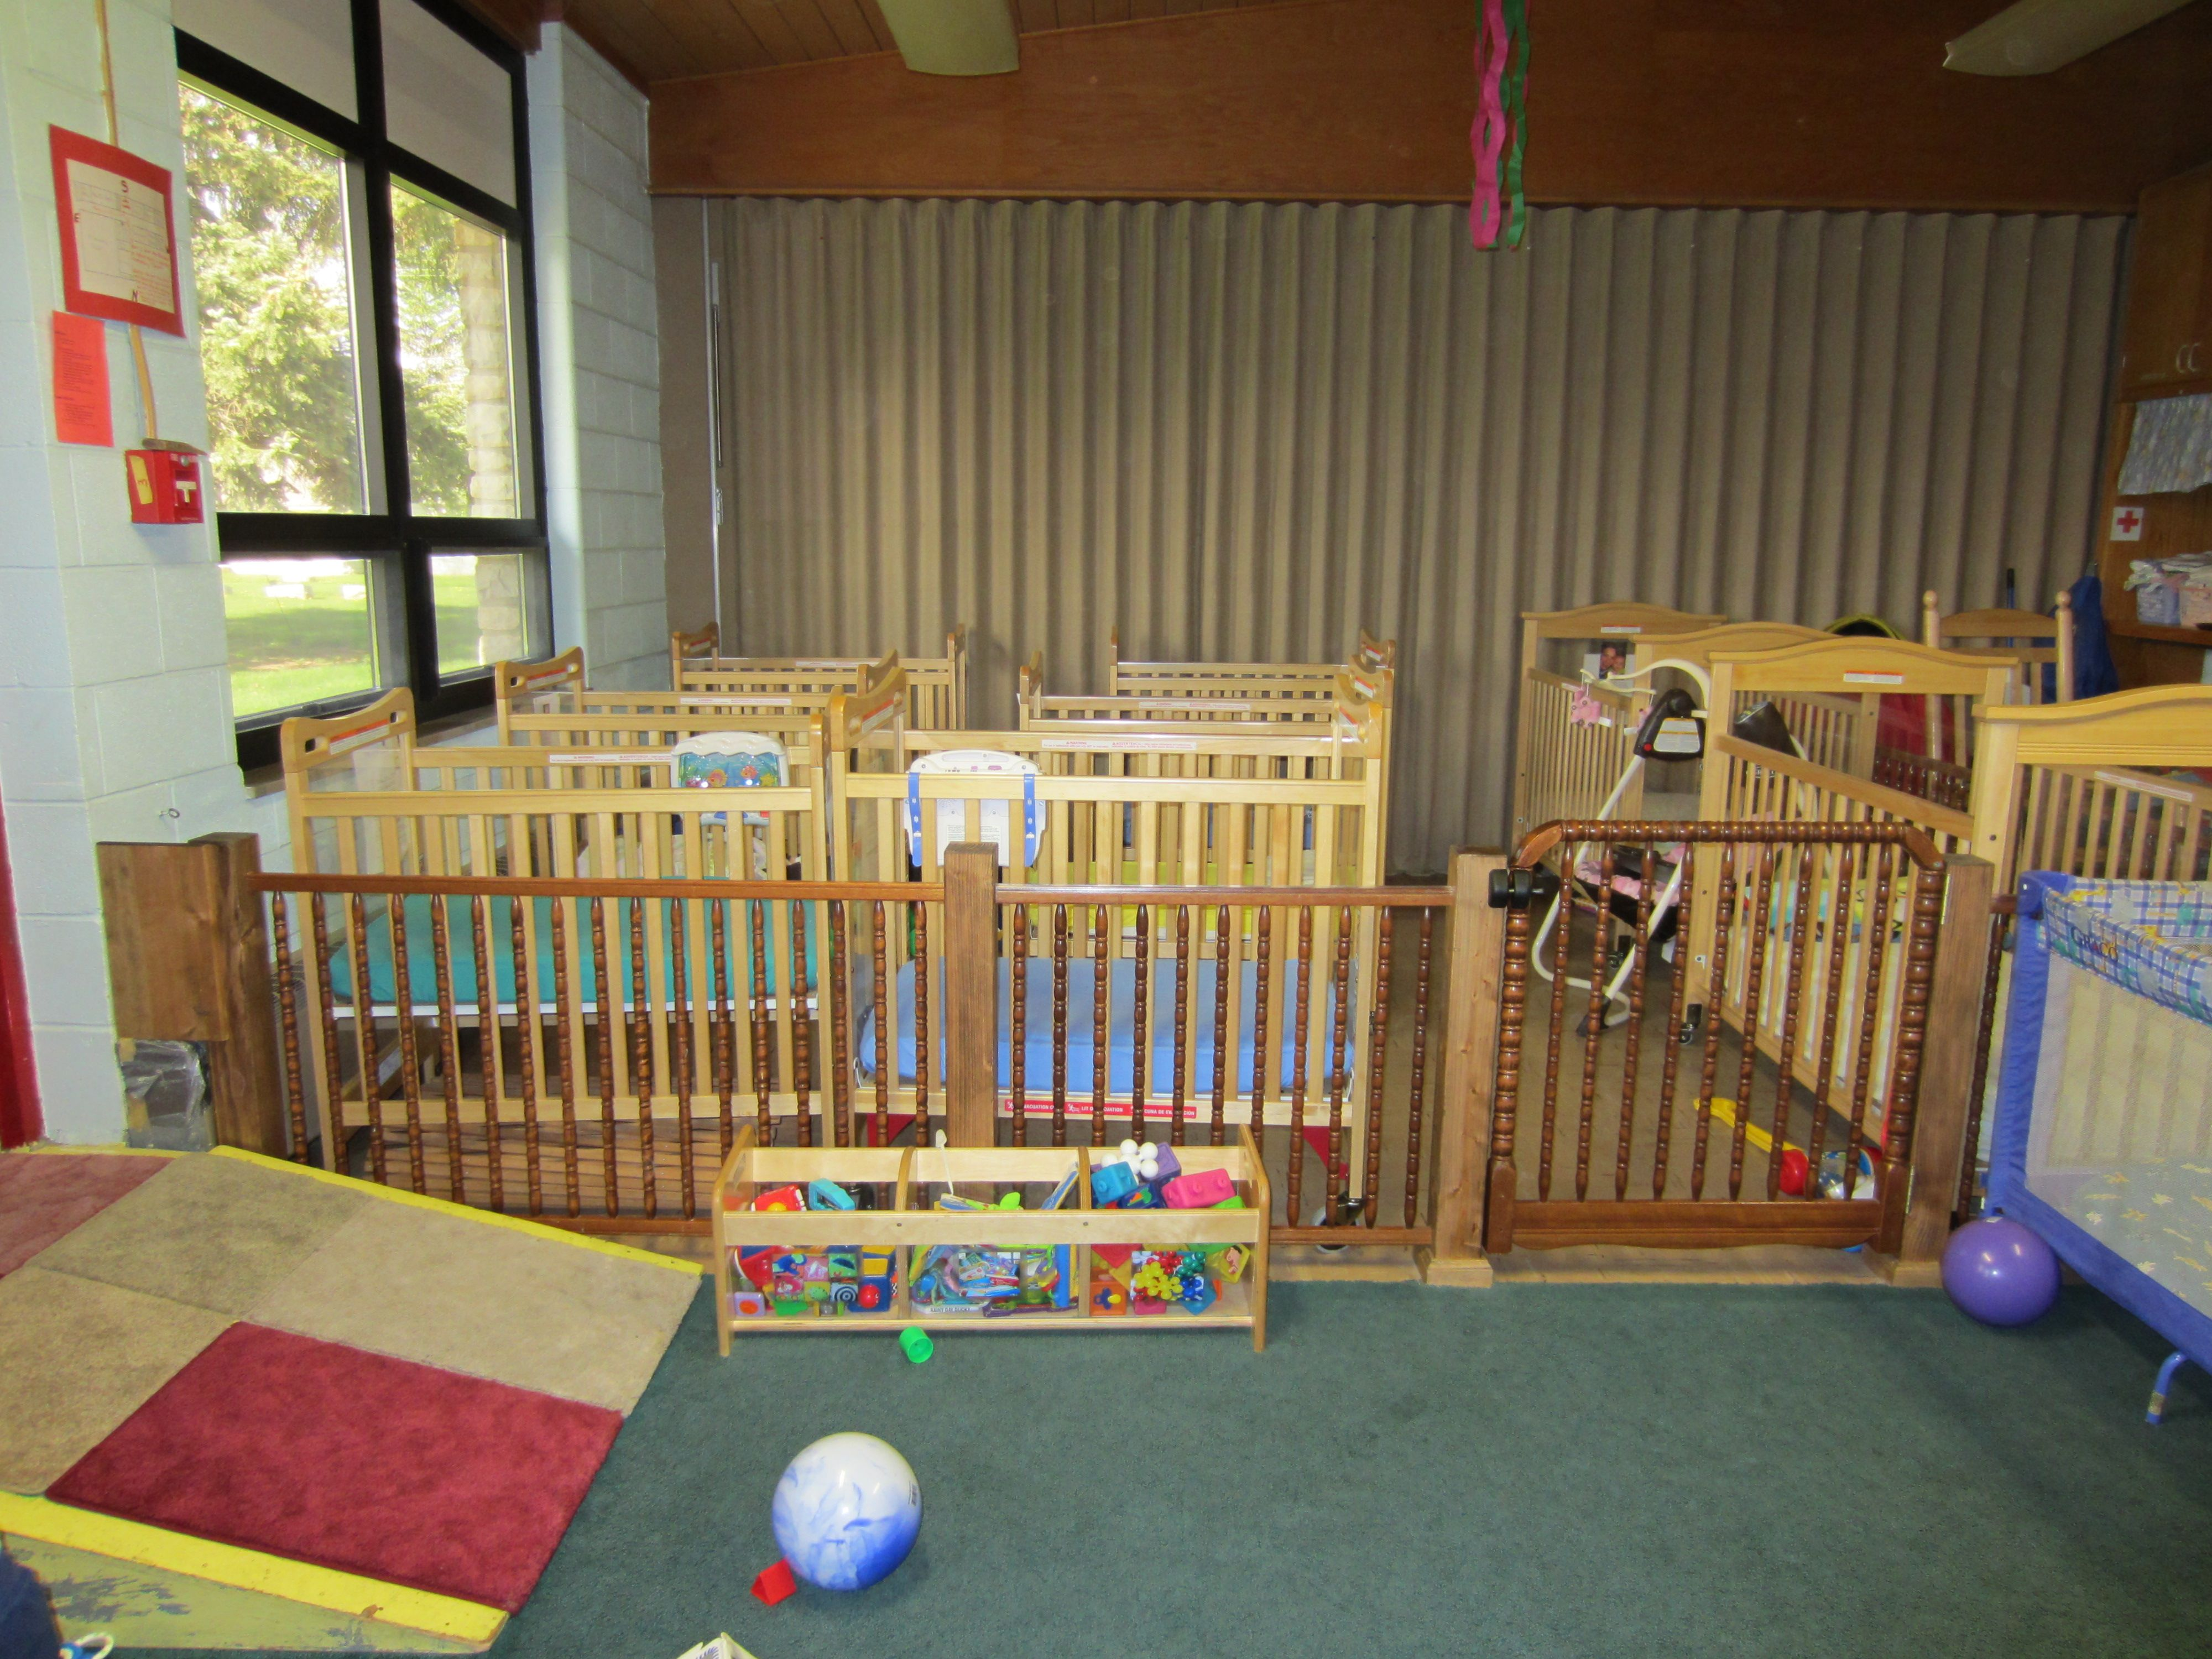 New Uses For Old Cribs Classroom Room Divider Infant Daycare